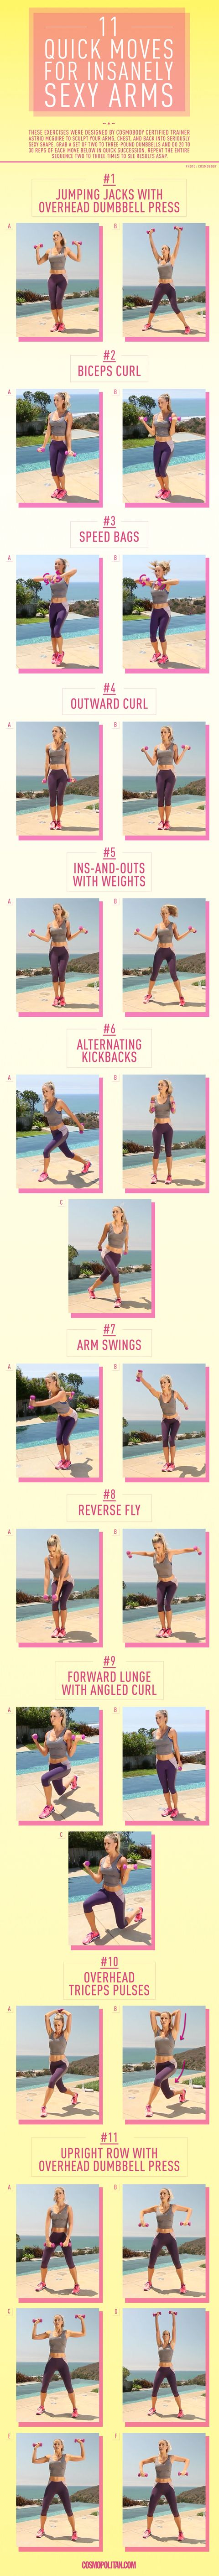 11 Quick Moves For Insanely Sexy Arms 90 Minute Full Body Circuit Workout And I Know It Pinterest Image